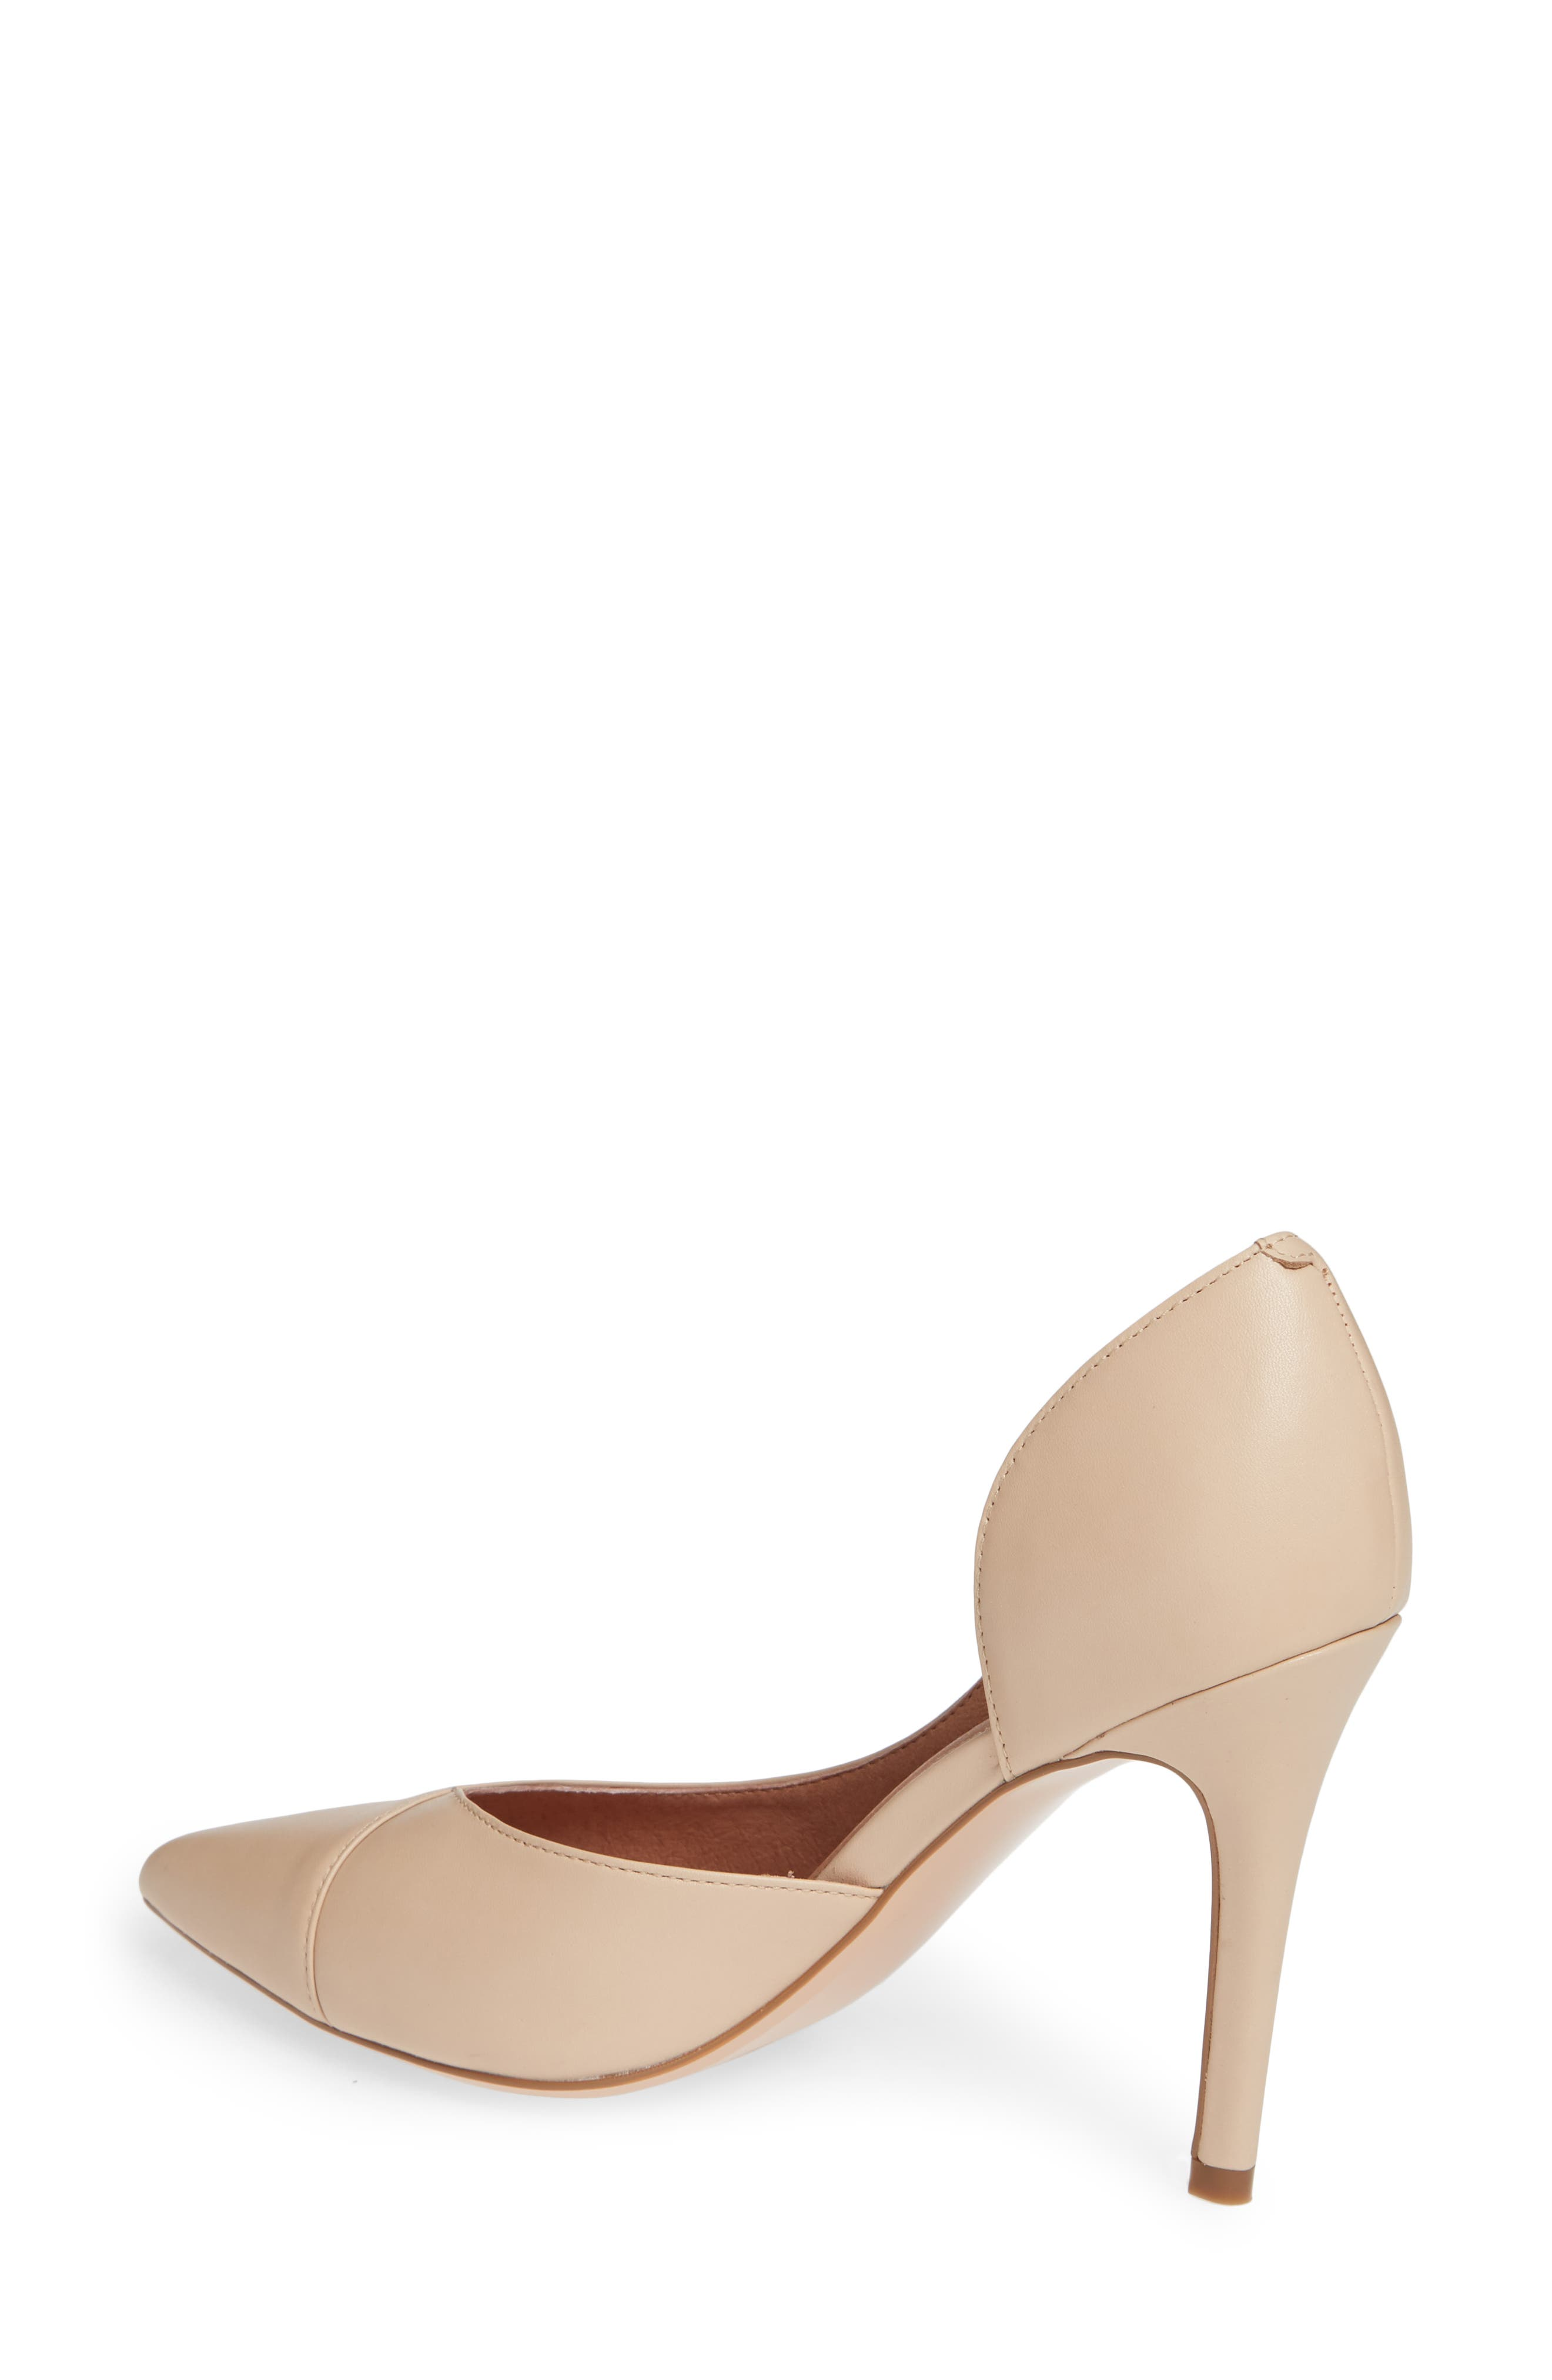 Autumn Pump,                             Alternate thumbnail 2, color,                             NUDE LEATHER